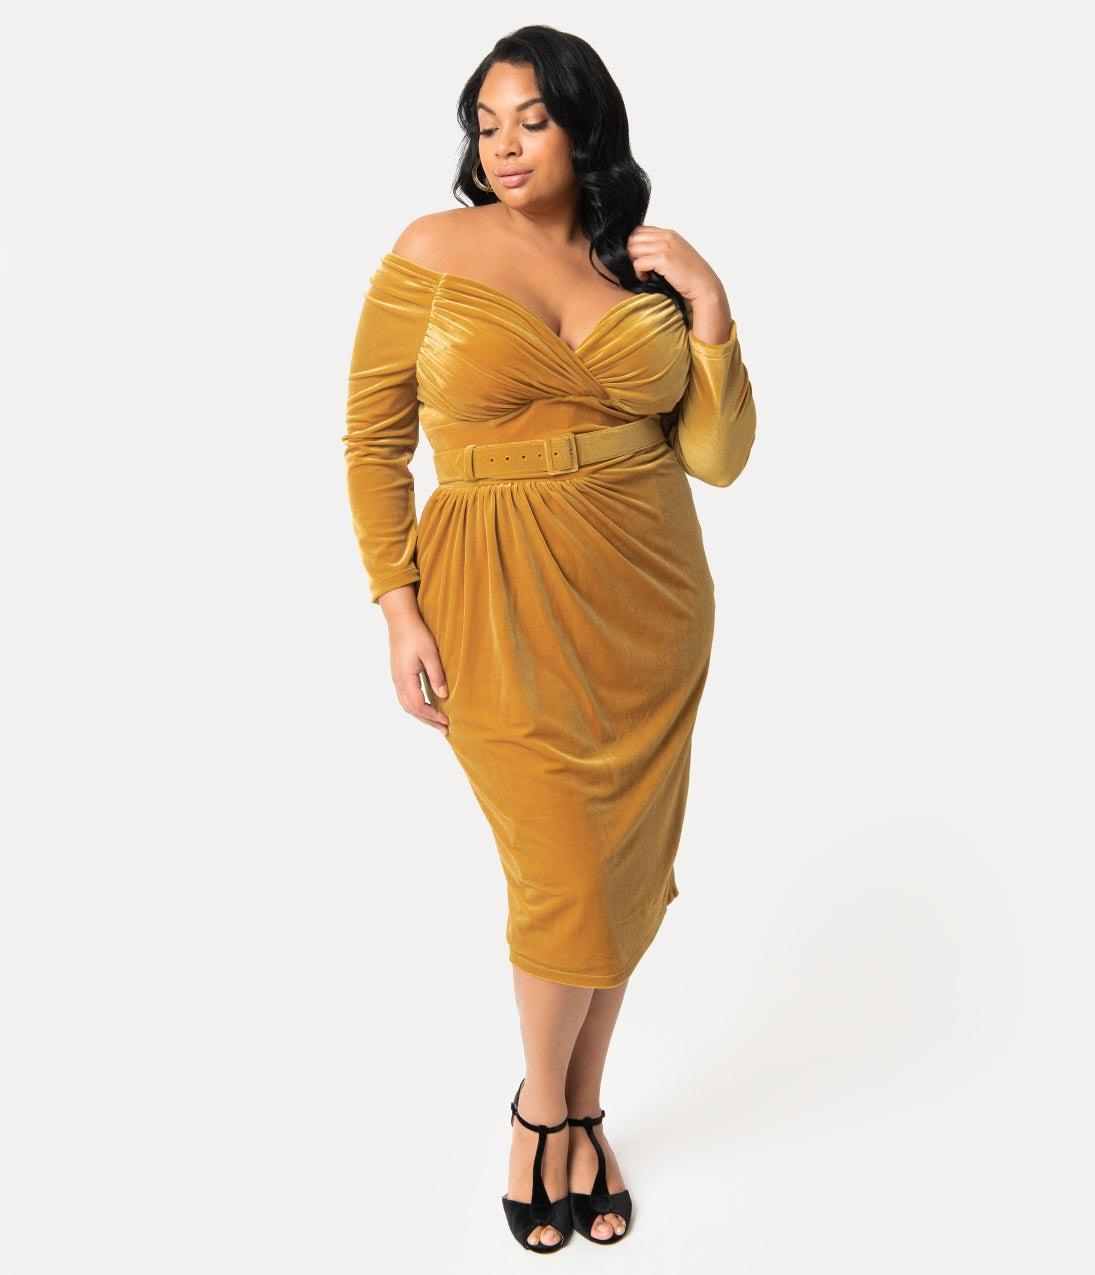 1950s Plus Size Dresses, Clothing and Costumes Vixen By Micheline Pitt Plus Size Gold Velvet Starlet Wiggle Dress $170.00 AT vintagedancer.com